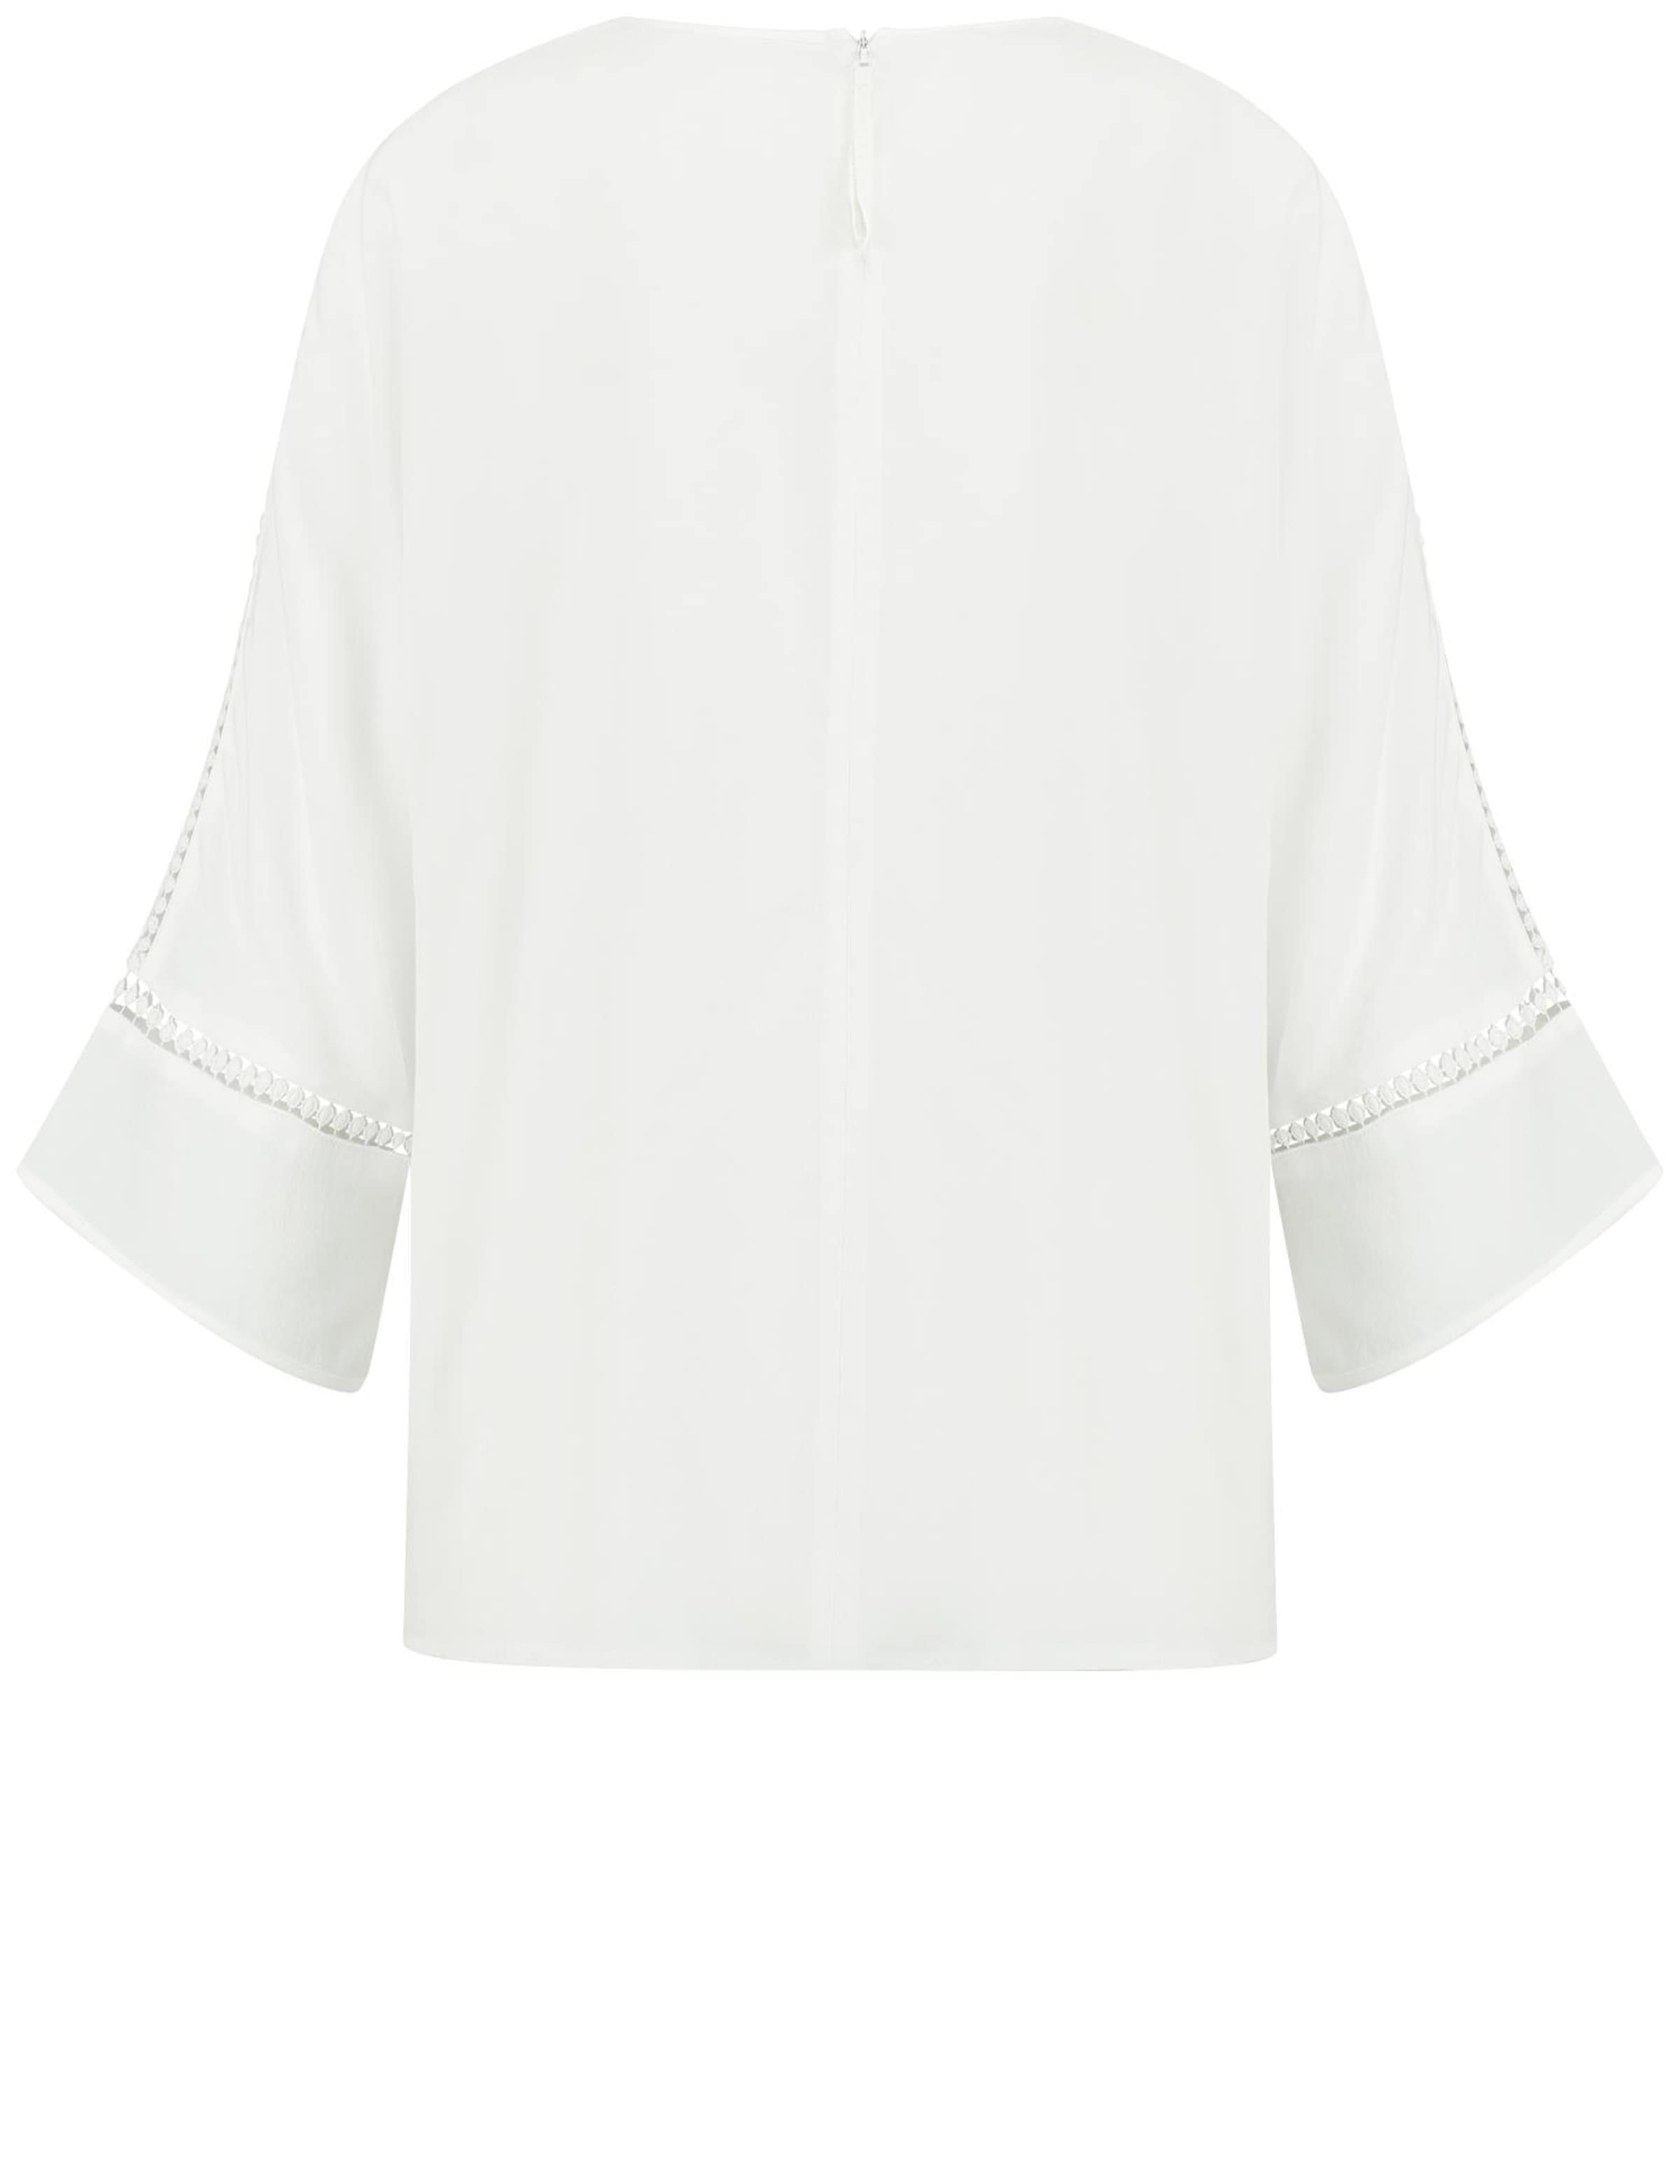 In Offwhite Bluse Gerry Weber Gerry Bluse Weber In Offwhite Bluse In Gerry Weber iOXuPkZ